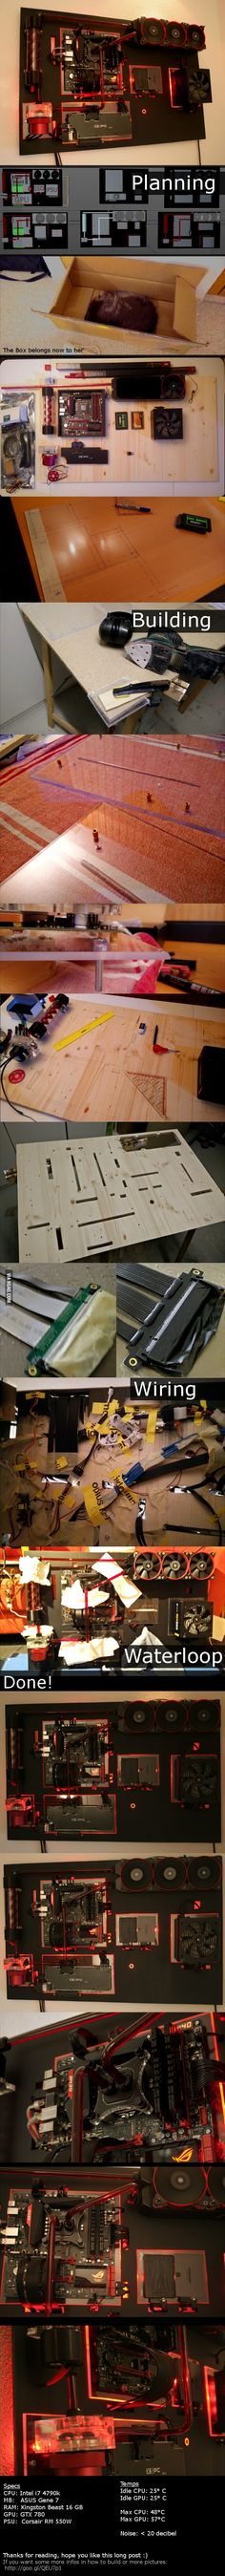 New Computer(Arcan) - Build Log - 9GAG